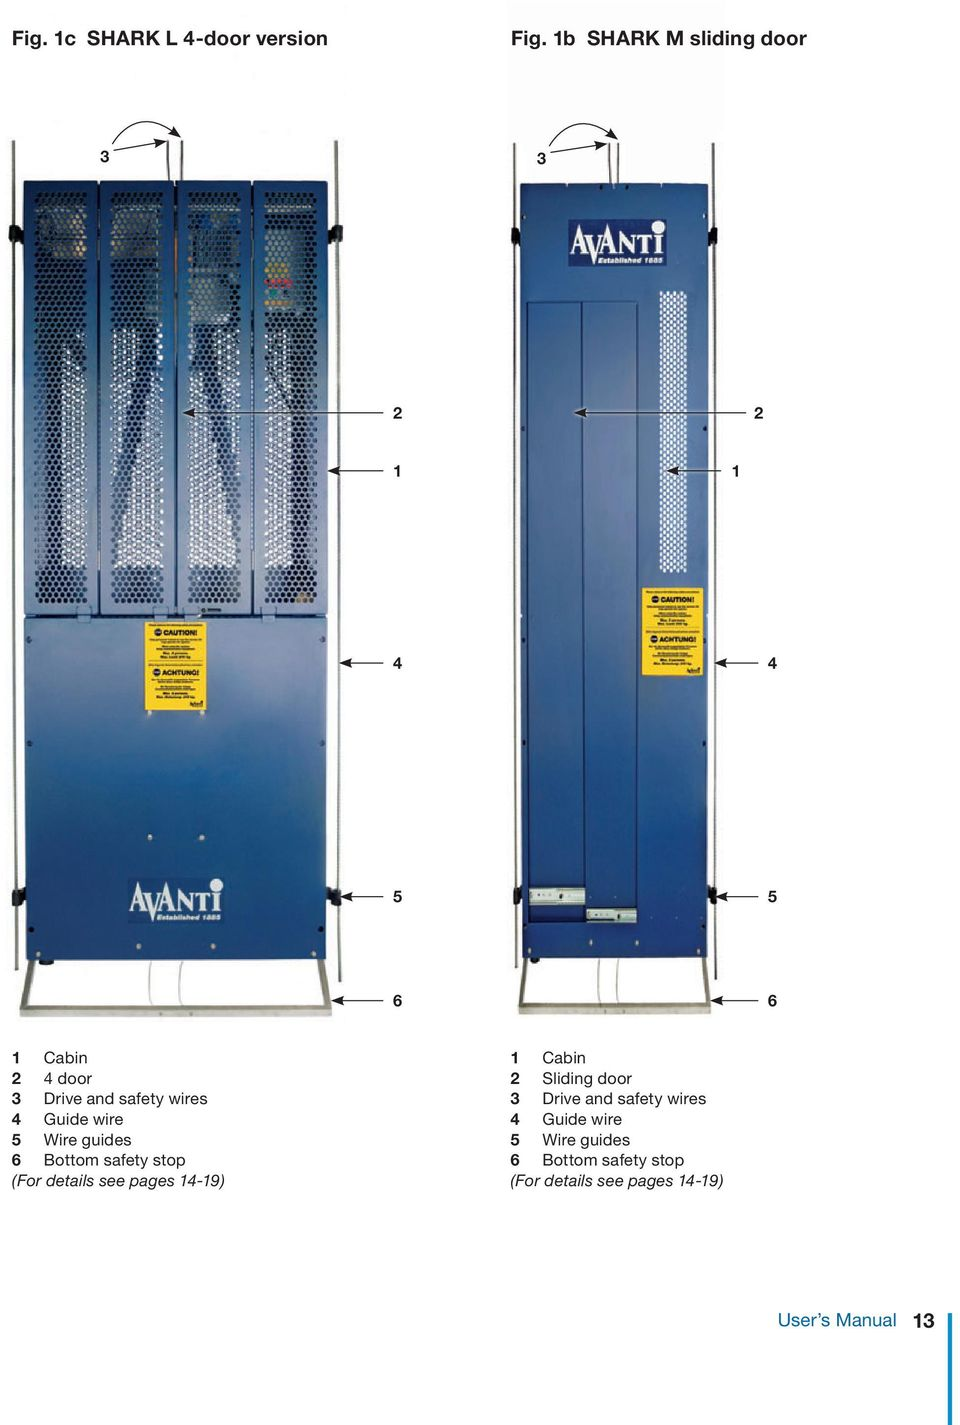 Avanti Building Maintenance Unit Bmu Aus Nz User S Manual And Wiring Diagram Wires 4 Guide Wire 5 Guides 6 Bottom Safety Stop For Details See Pages